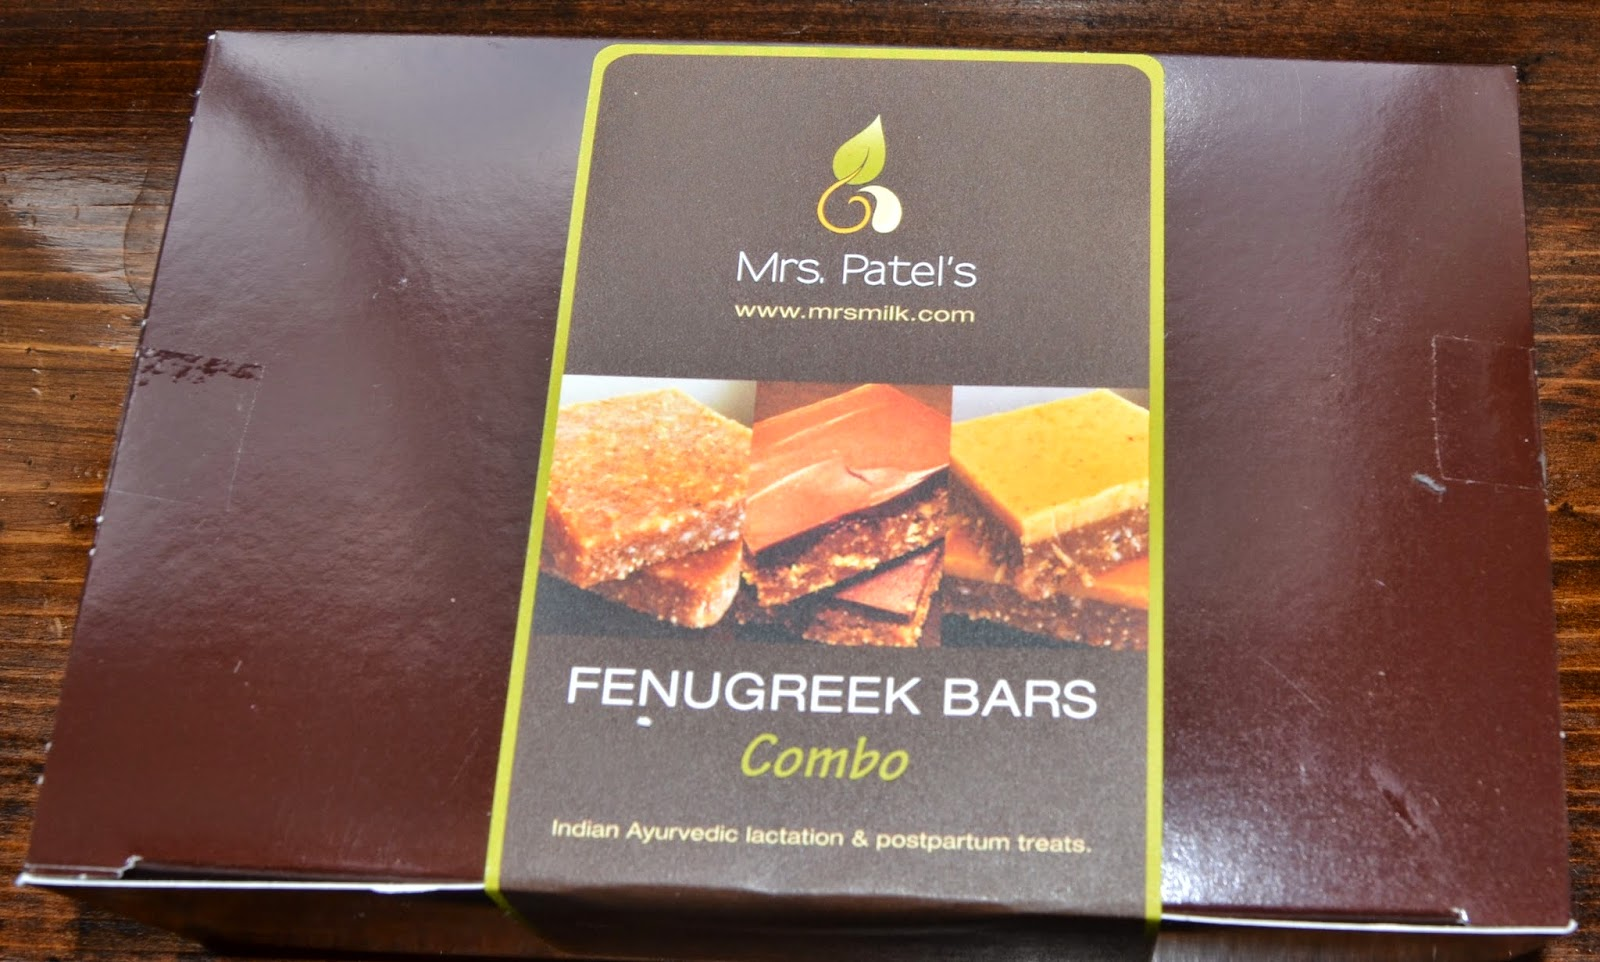 Mrs. Patel's Fenugreek Bars